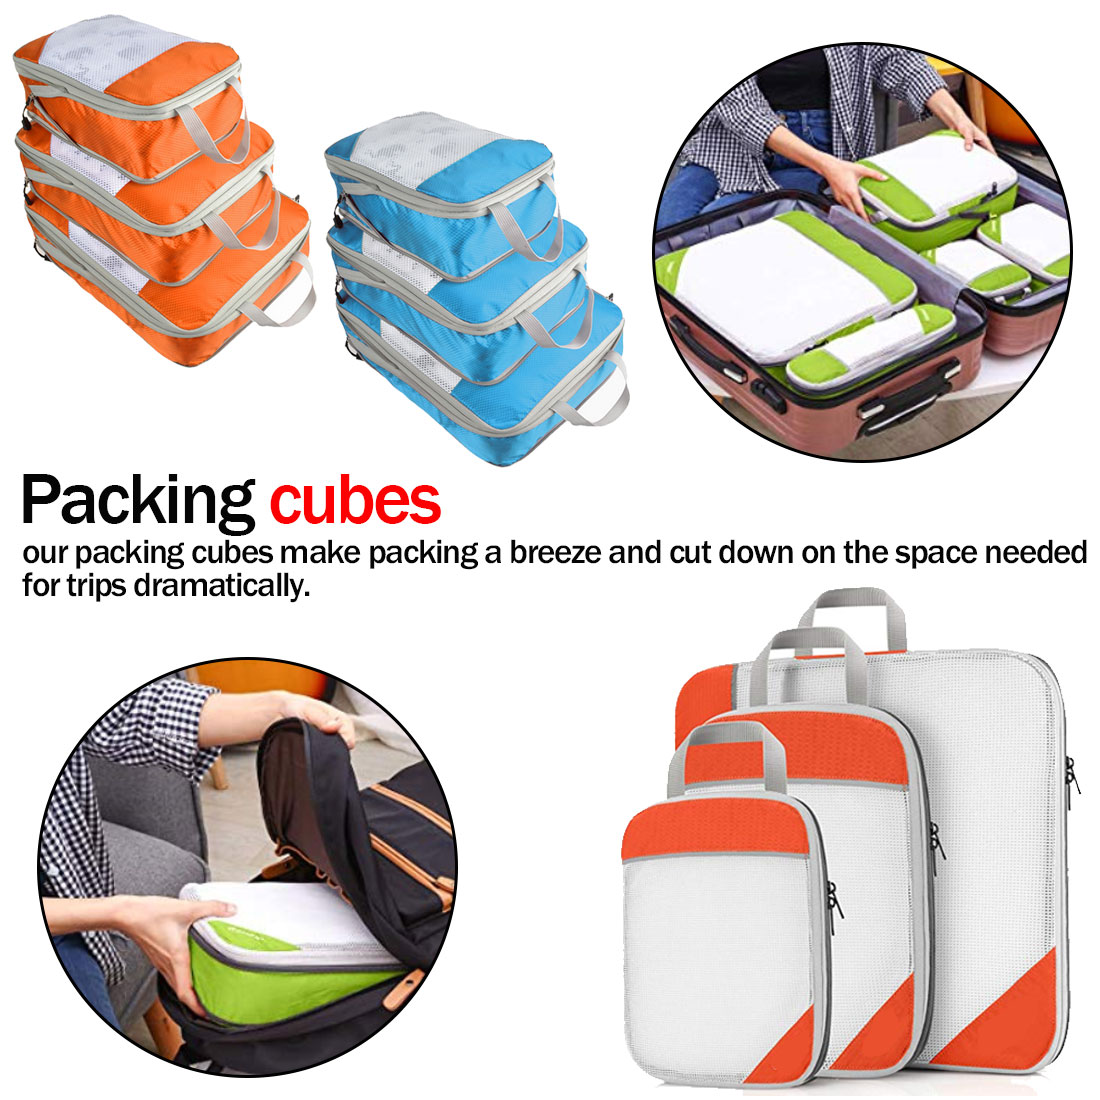 Travel Totes Packing Cubes Nylon Breathable Solid Color Travel Luggage Foldable Organizer Compressible Storage Bag